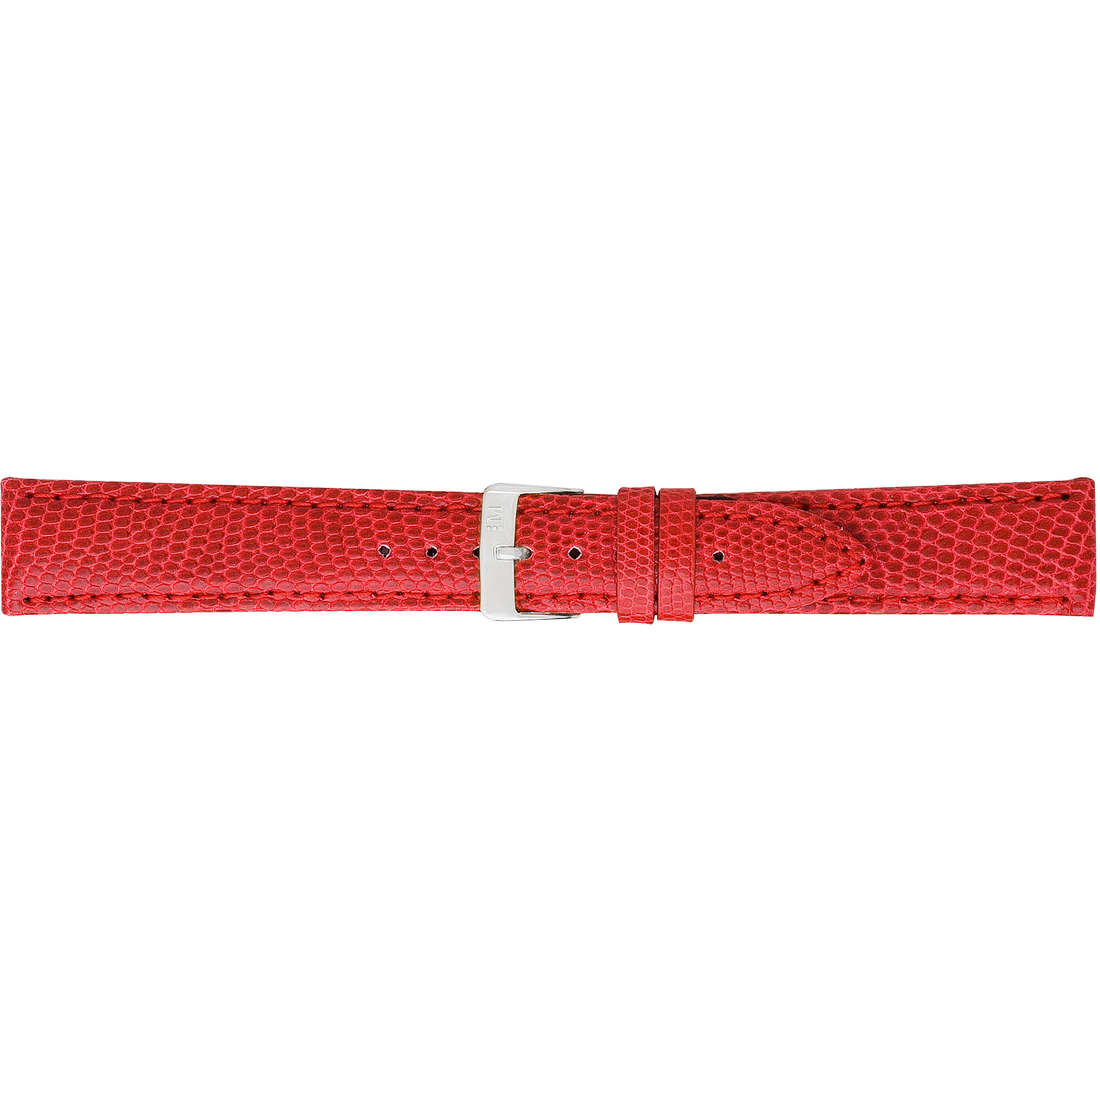 watch watch bands watch straps man Morellato Pelli Preziose A01X2053372083CR20